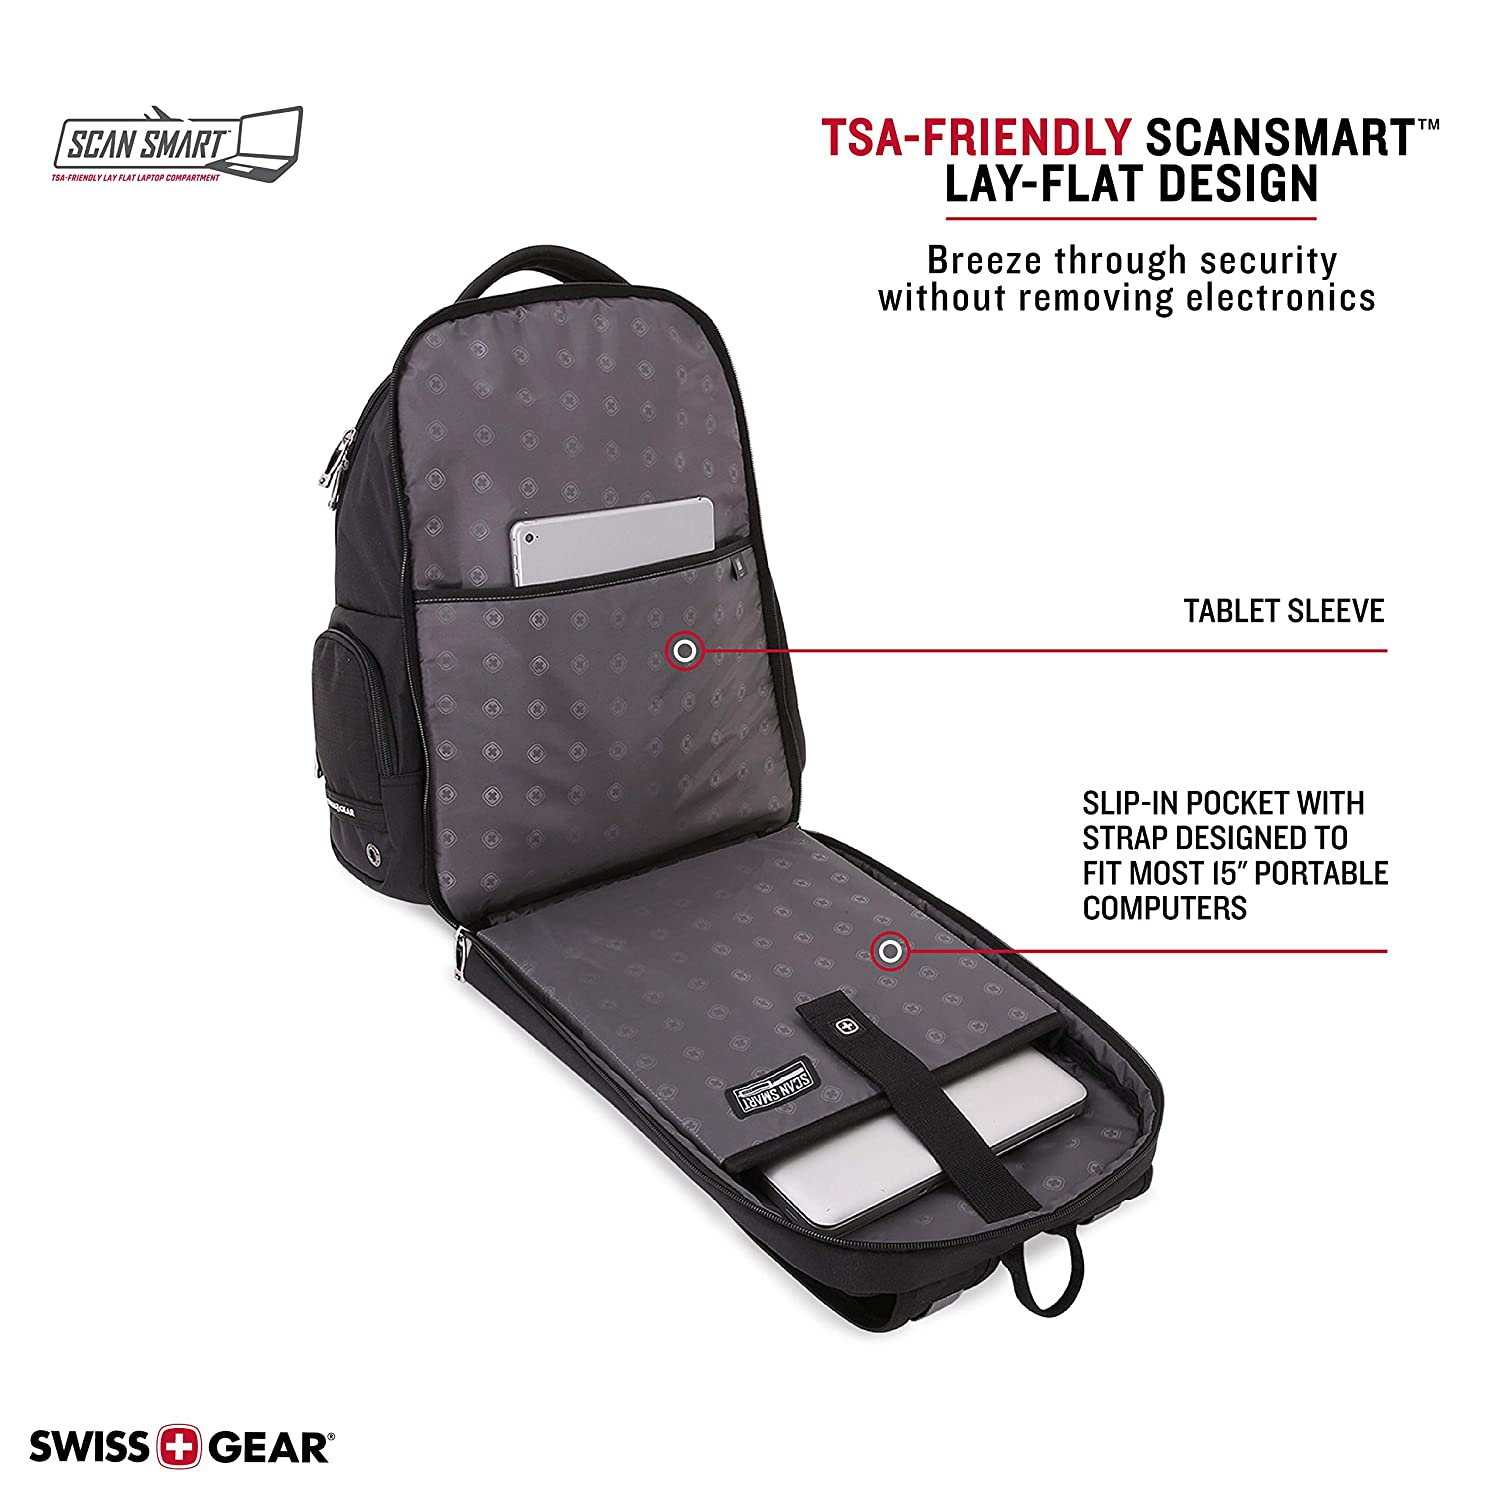 SWISSGEAR 5527 TSA FRIENDLY Computer Mens and Womens SCANSMART Super padding Backpack Black Swiss Gear 5527200417